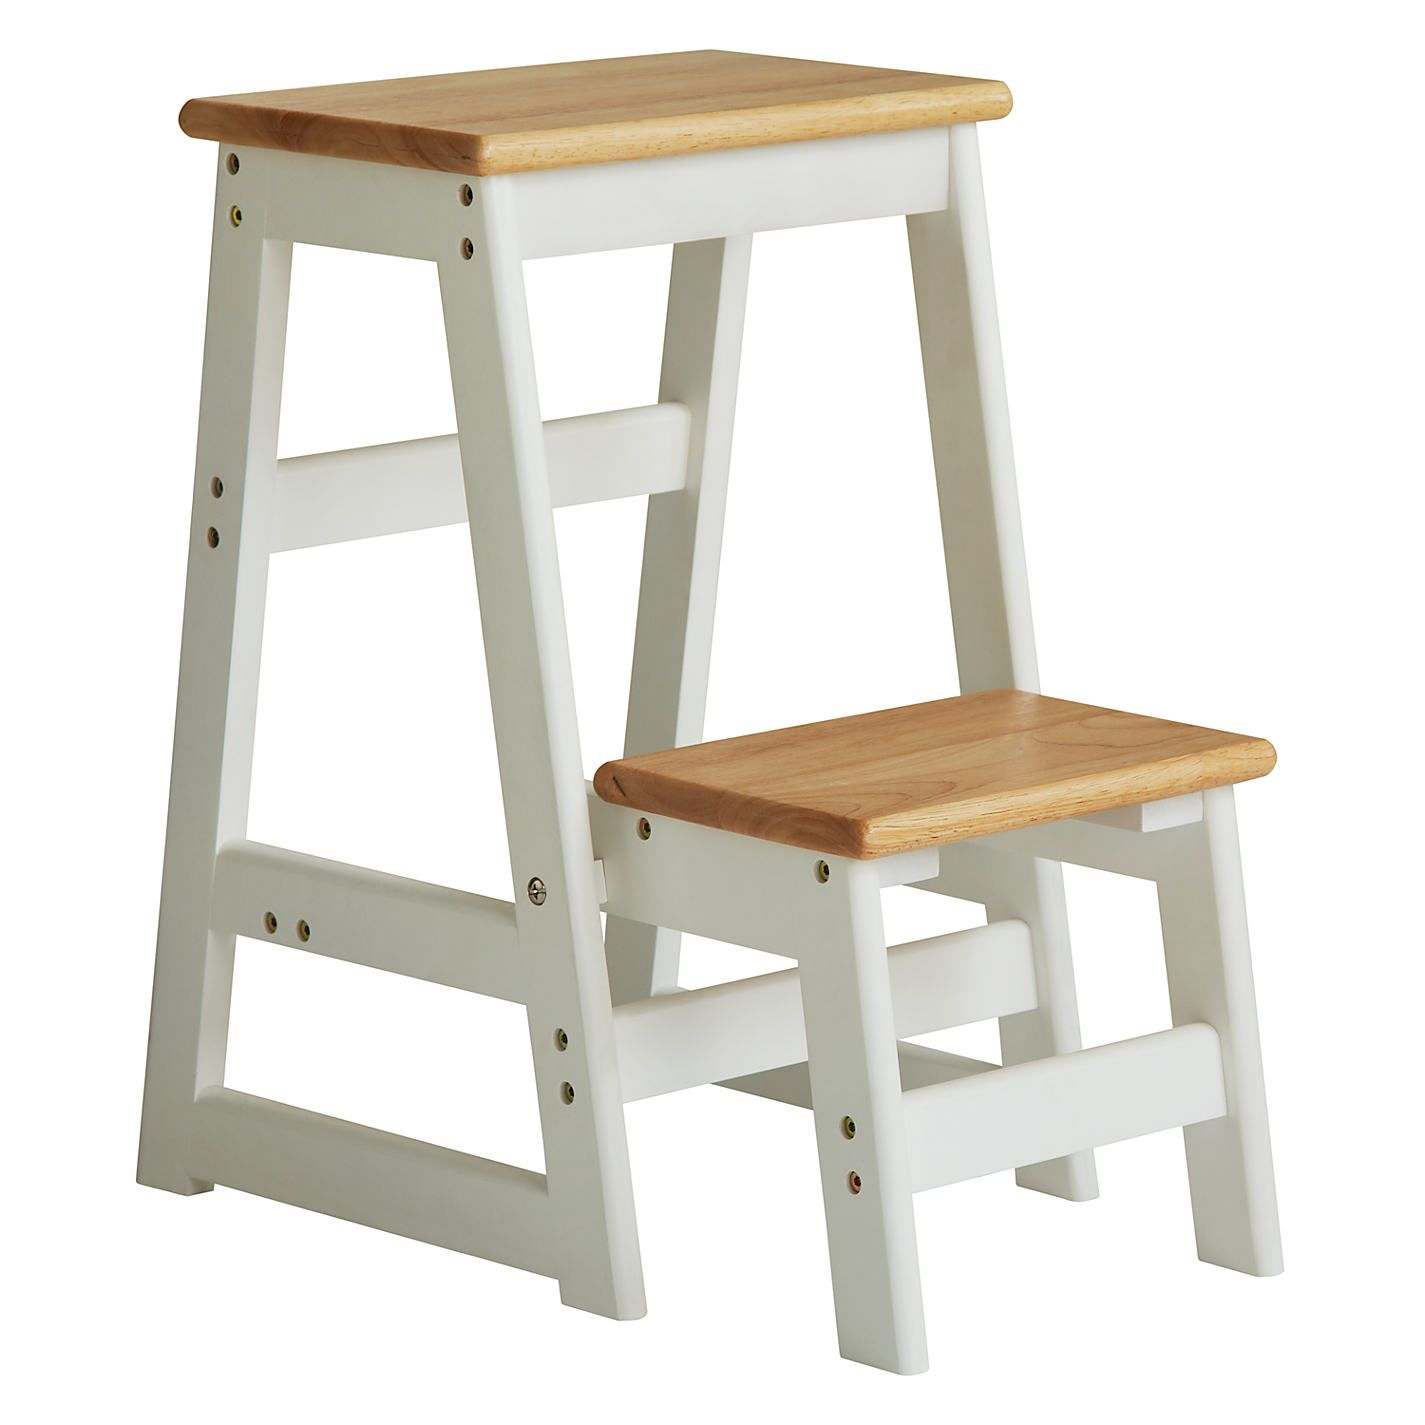 Buy John Lewis Wooden Step Stool | John Lewis